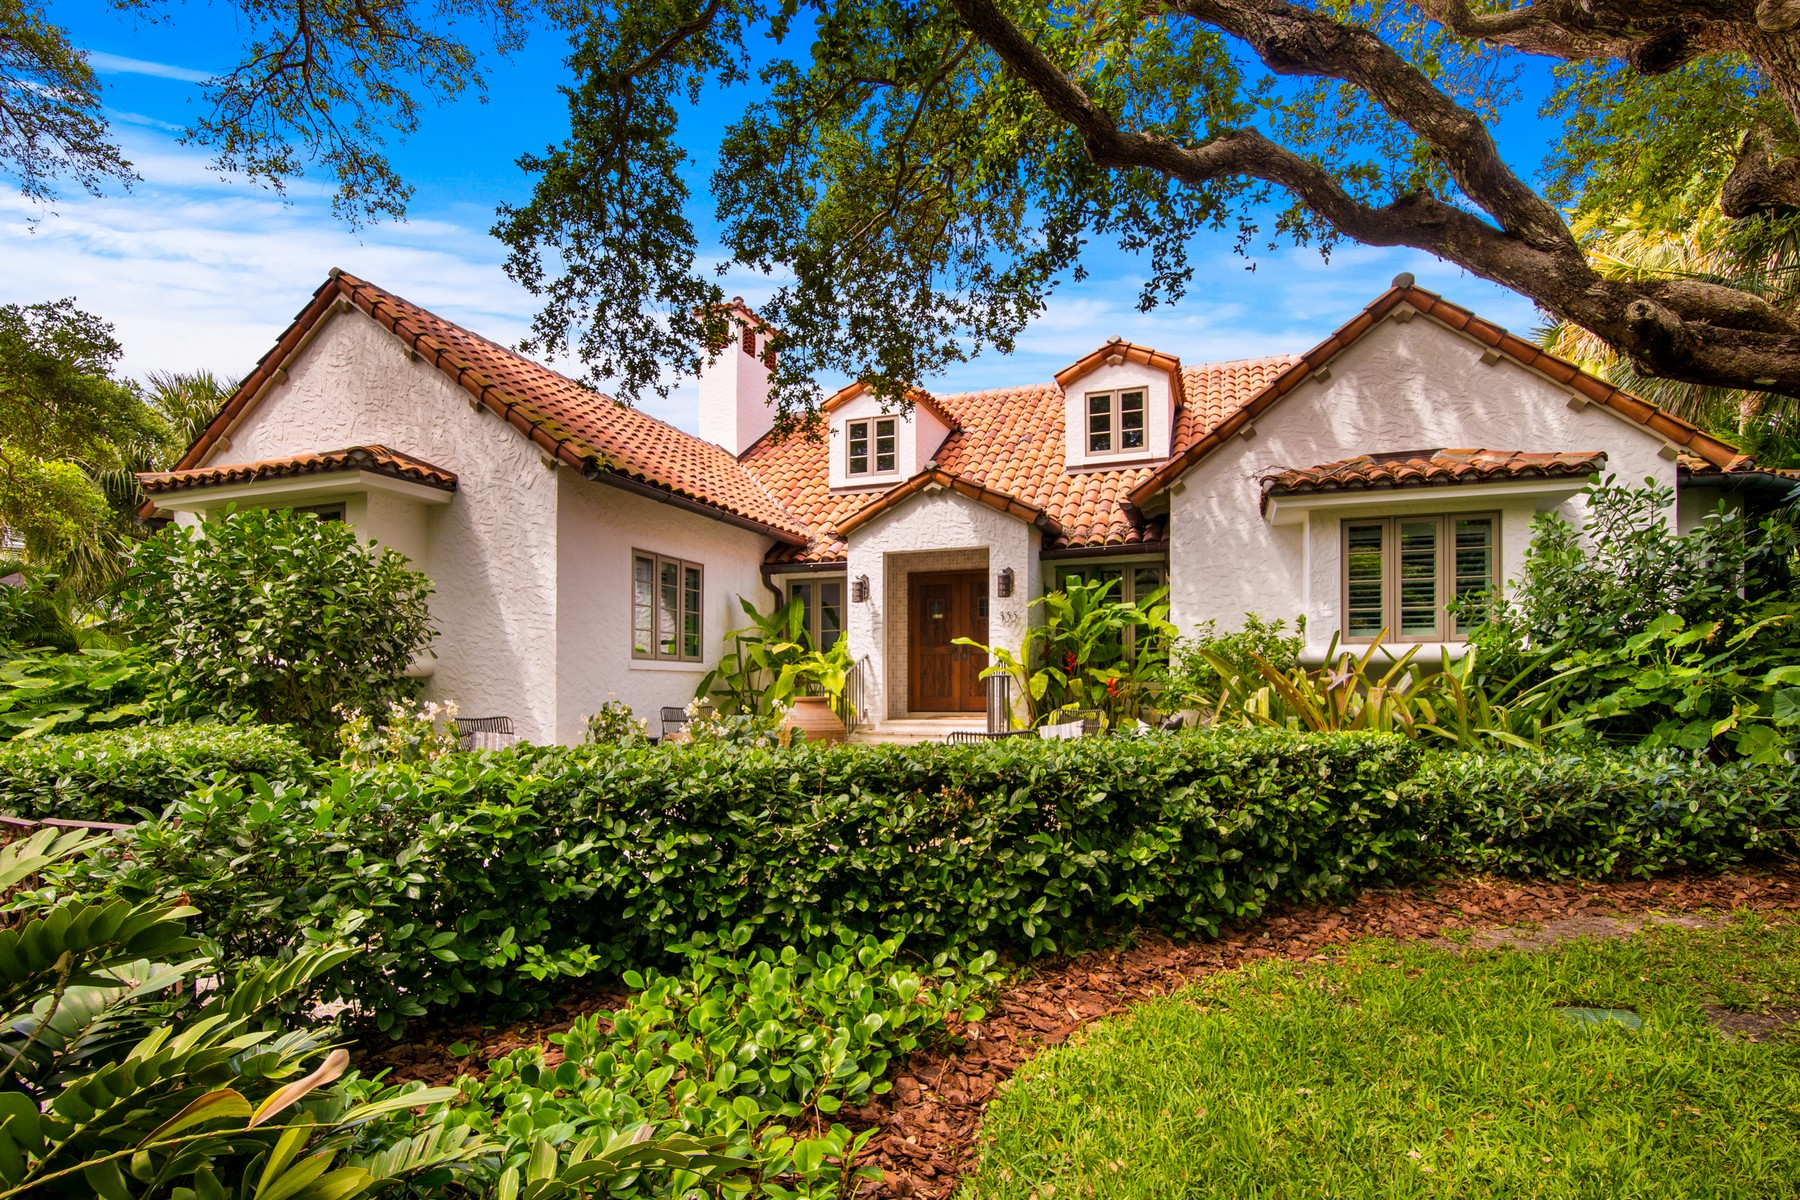 Single Family Home for Sale at Historic Cottage-Style Gem 955 Riomar Dr Vero Beach, Florida 32963 United States